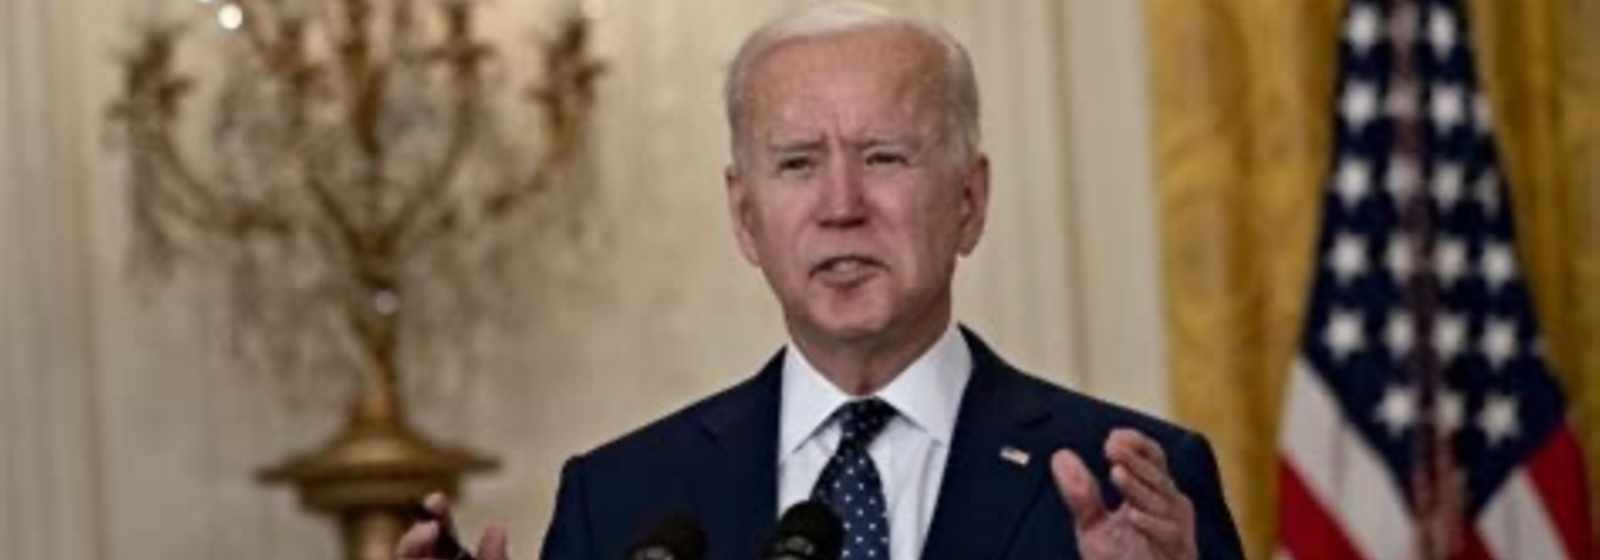 Biden Declares Russia an Enemy, Refuses to Mention China's Threat